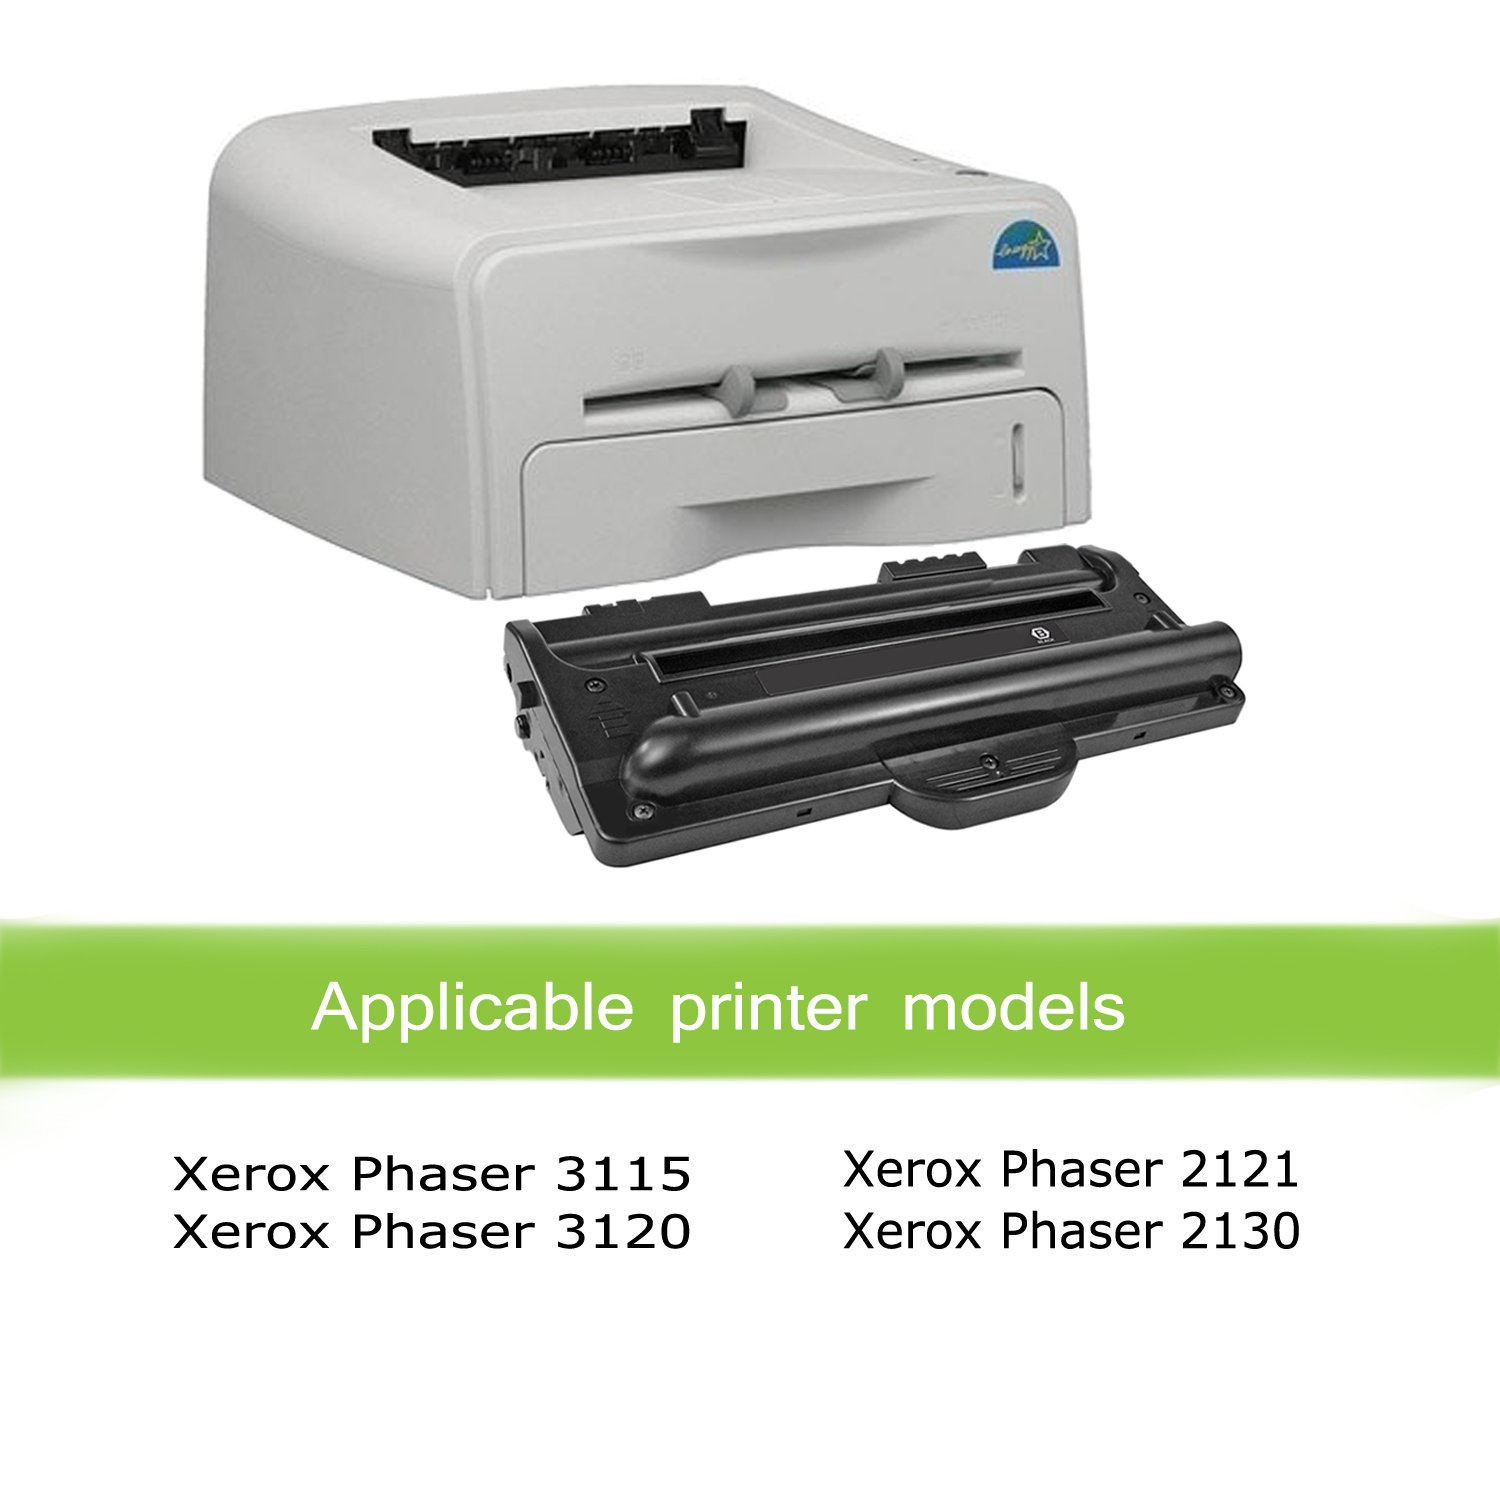 XEROX PHASER 3115 DRIVERS FOR PC